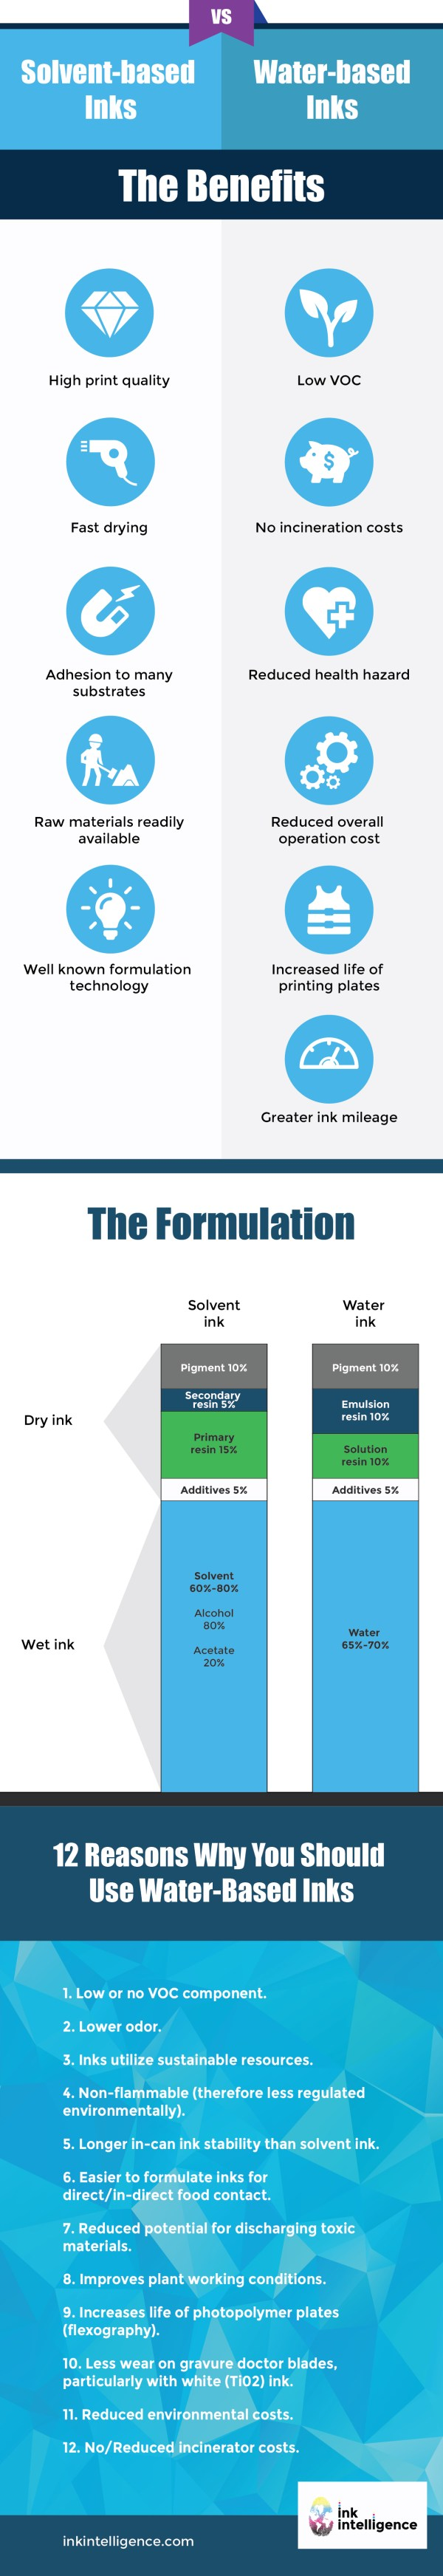 Solvent Based VS Water Based inks